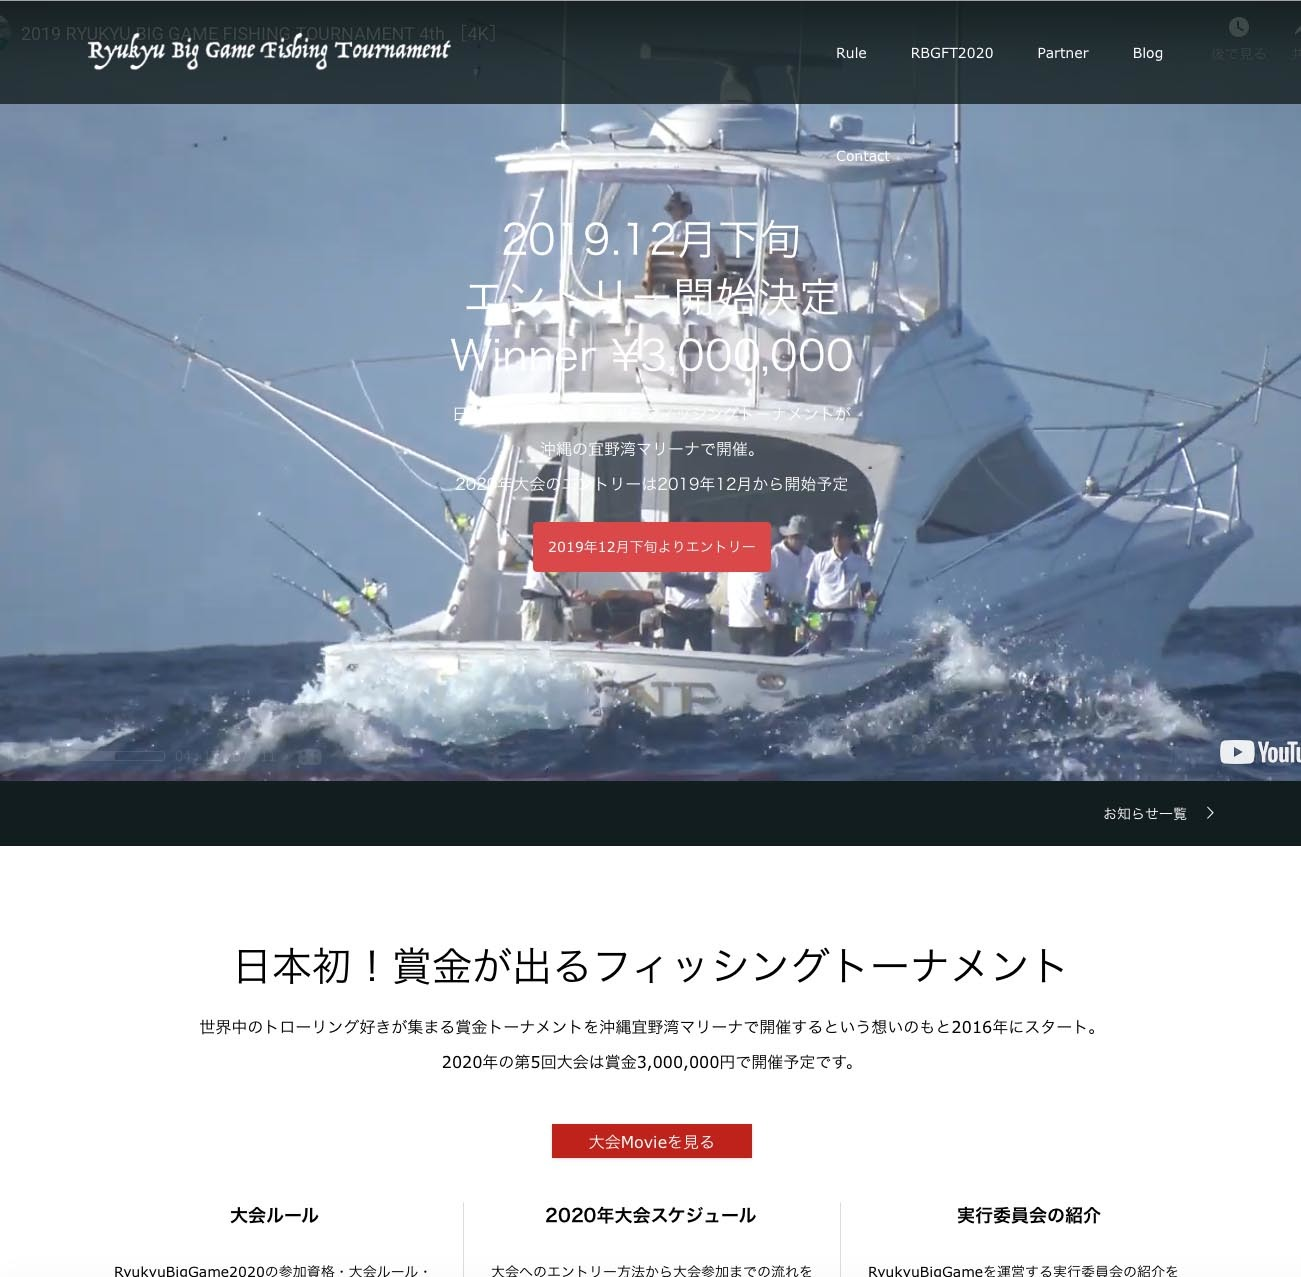 Ryukyu Big Game Fishing Tournament 2020_f0009039_09504273.jpg